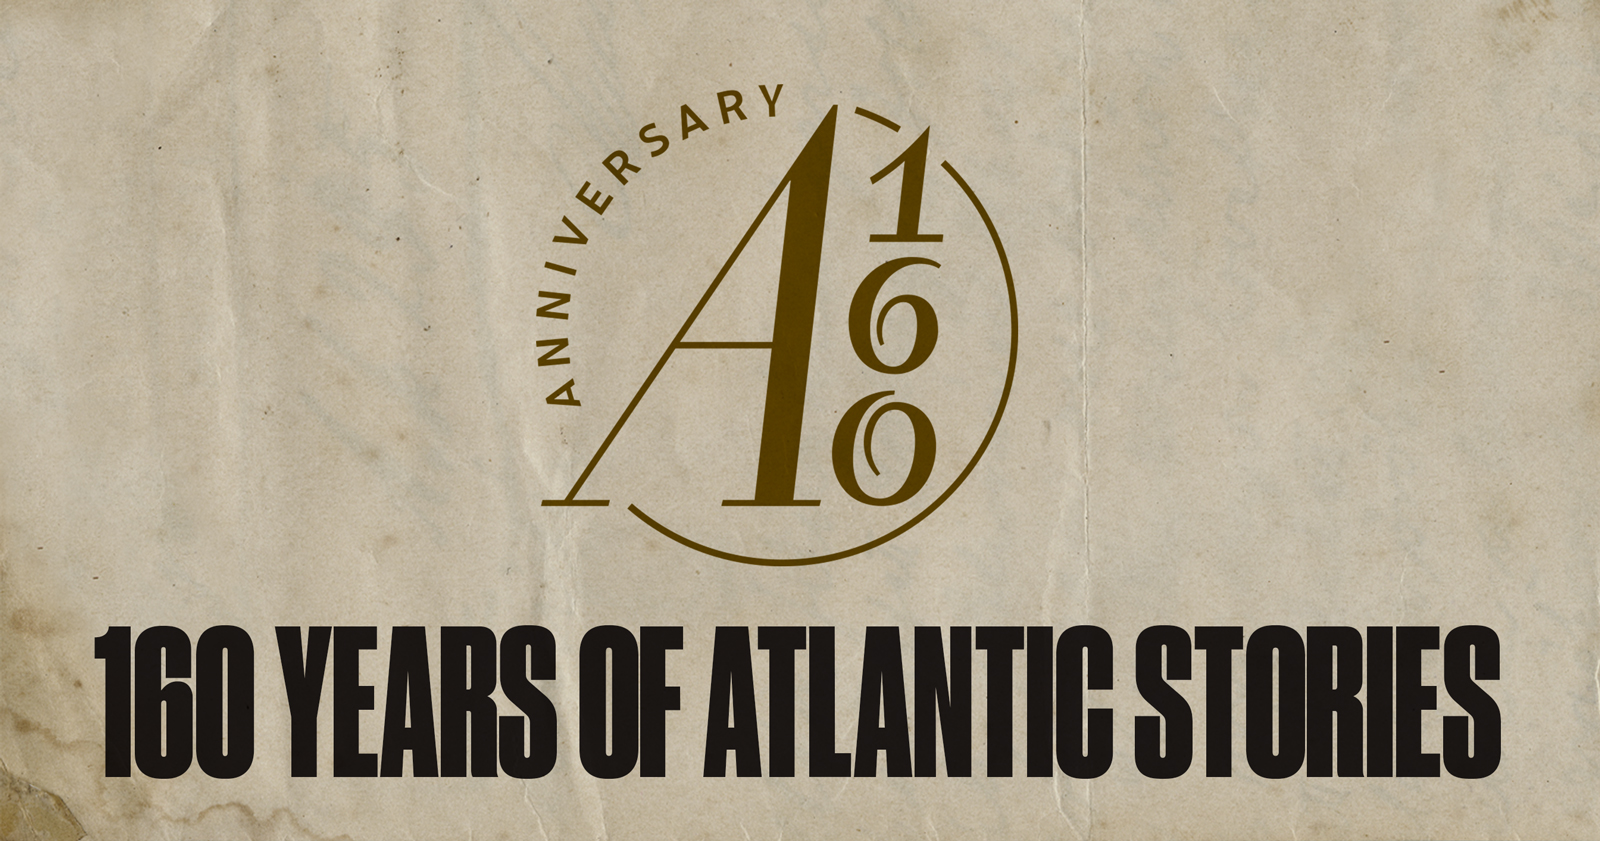 Emily dickinsons letters the atlantic 160 years of atlantic stories altavistaventures Choice Image